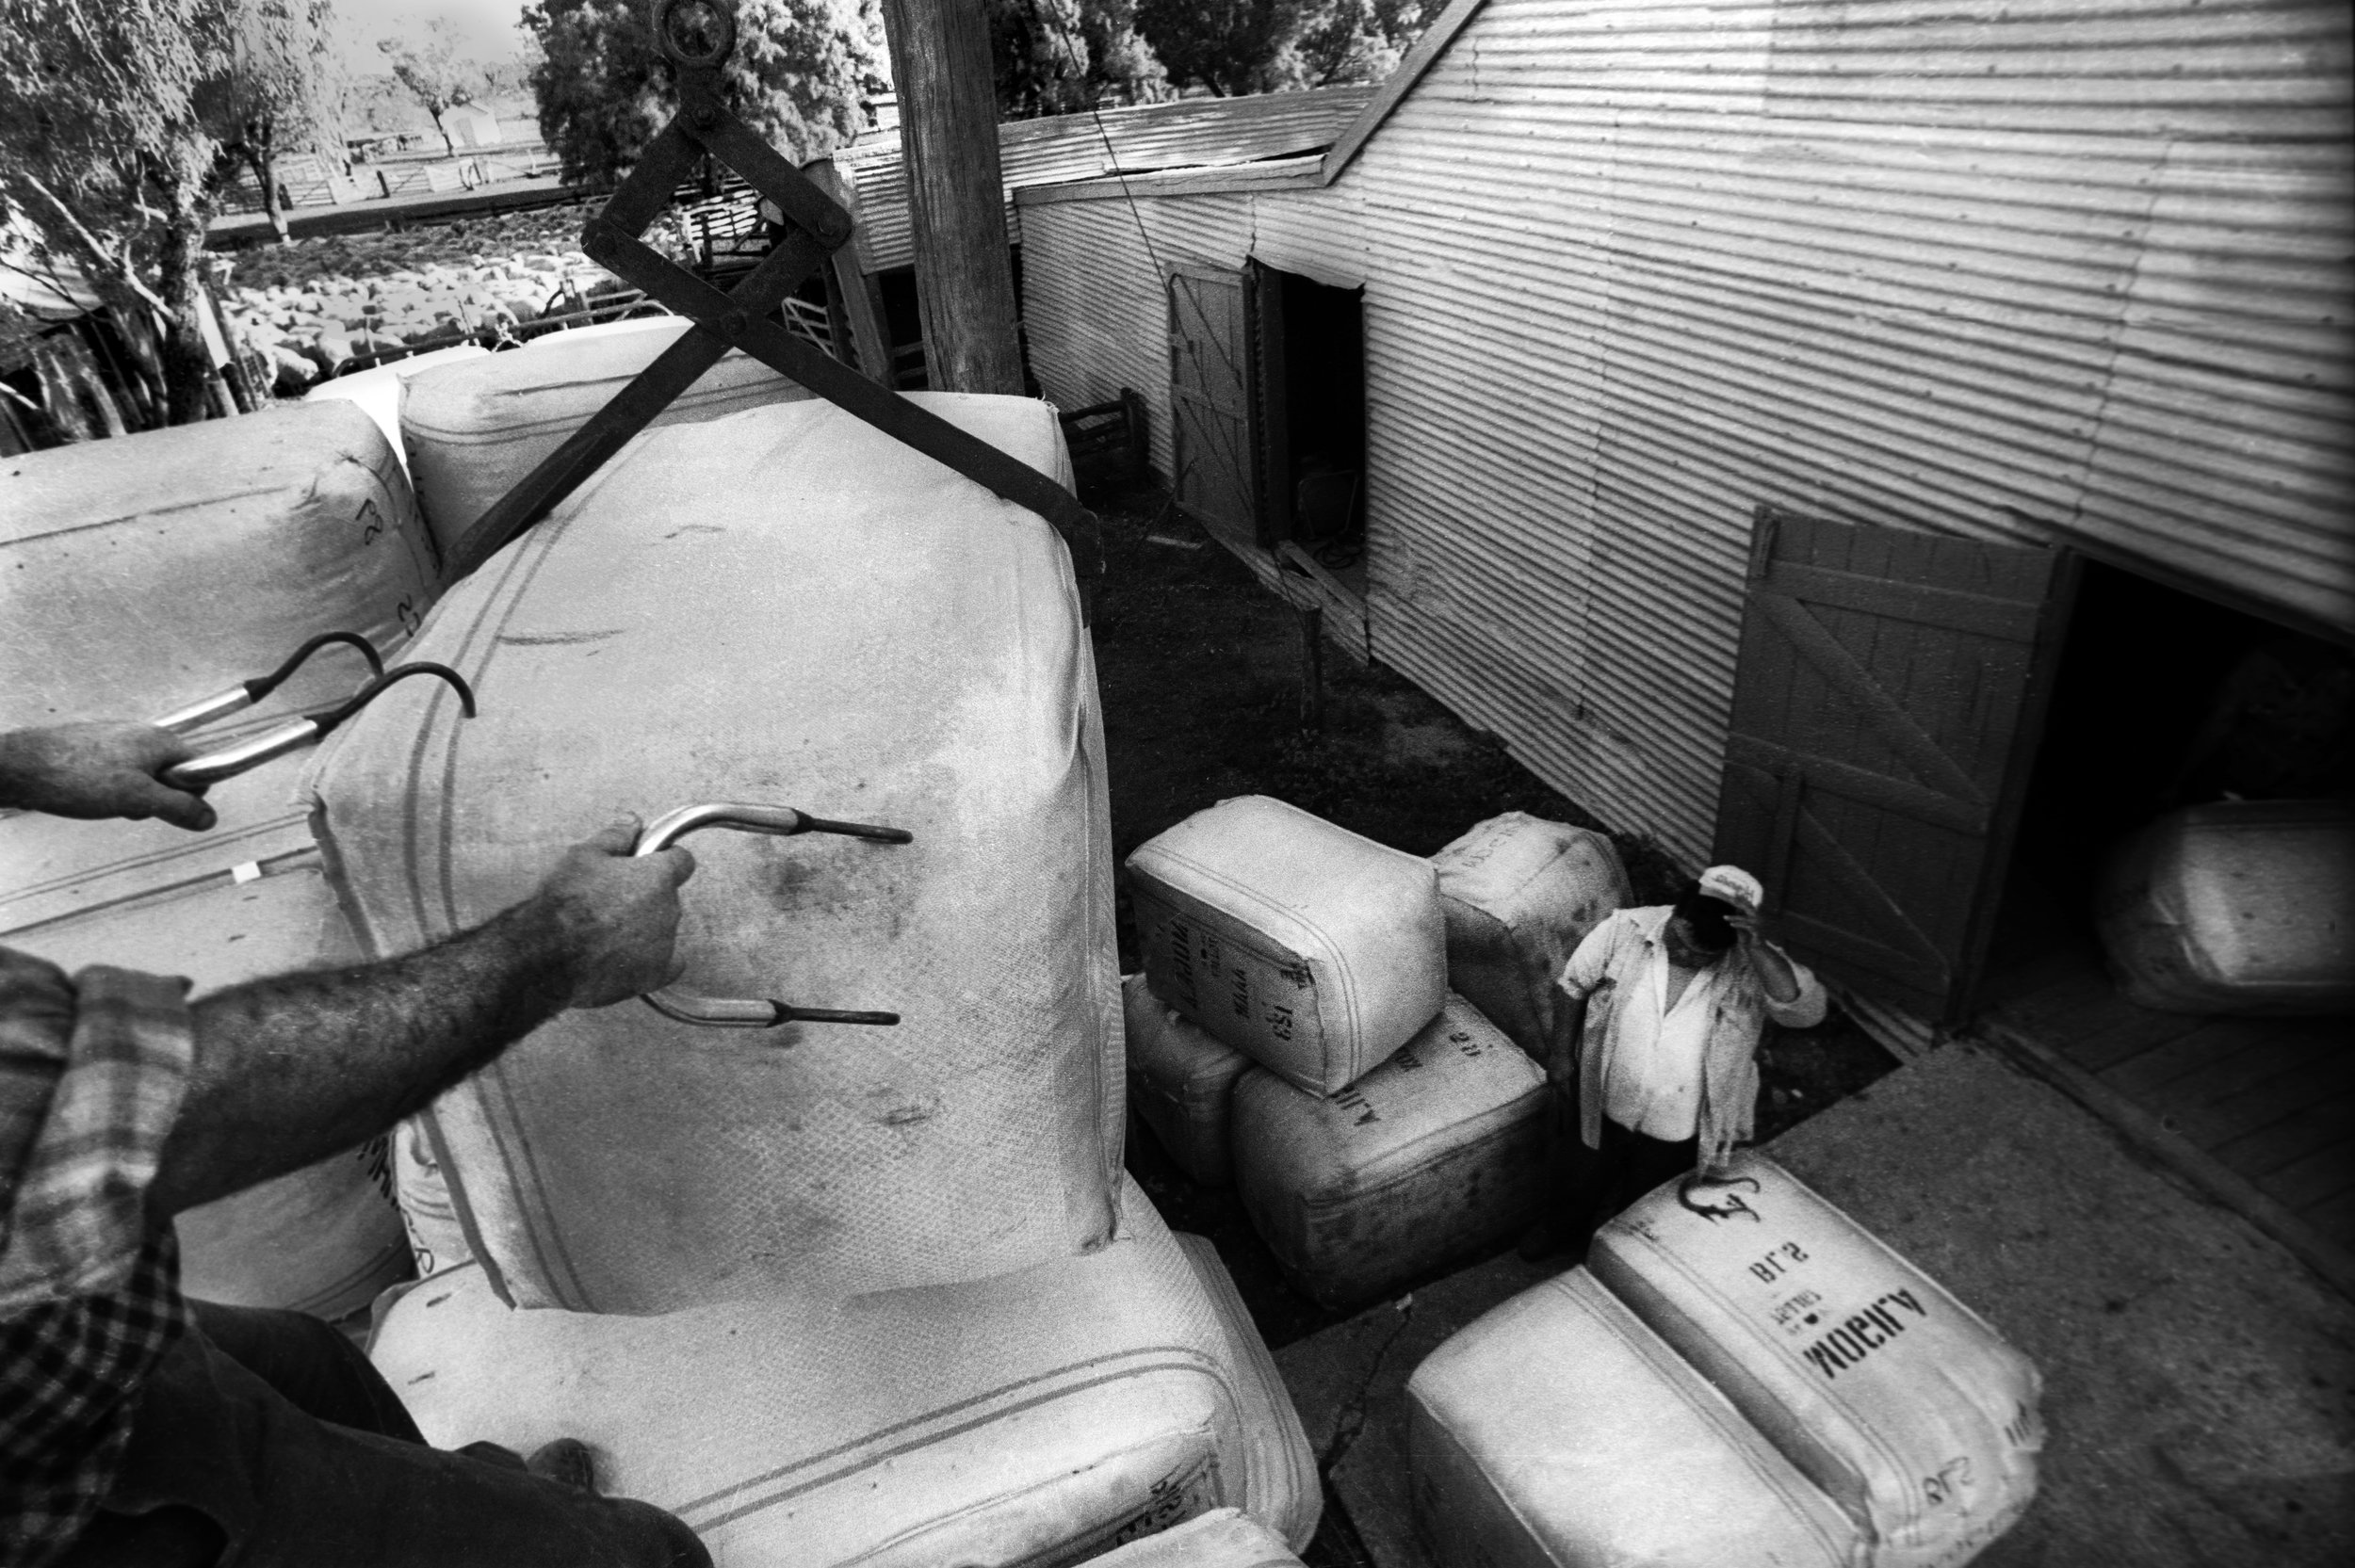 Bales of wool loaded upon a truck for initial transportation to wool storage facilities. Outback NSW, Australia. 1996